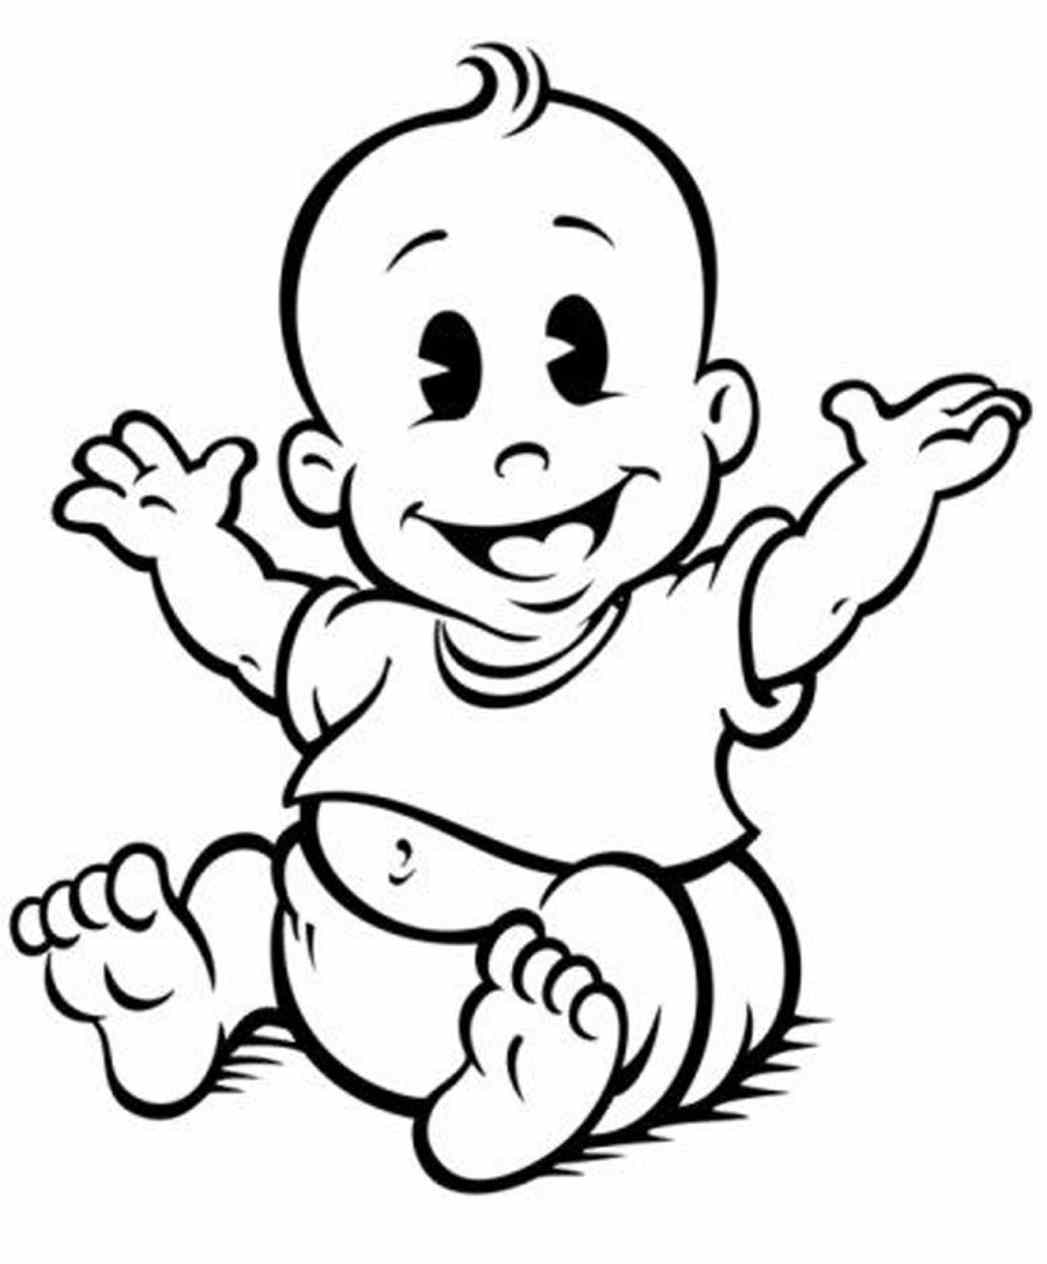 1047x1264 Clipart Baby Baby Shower Boy Clipart Black And White Shower